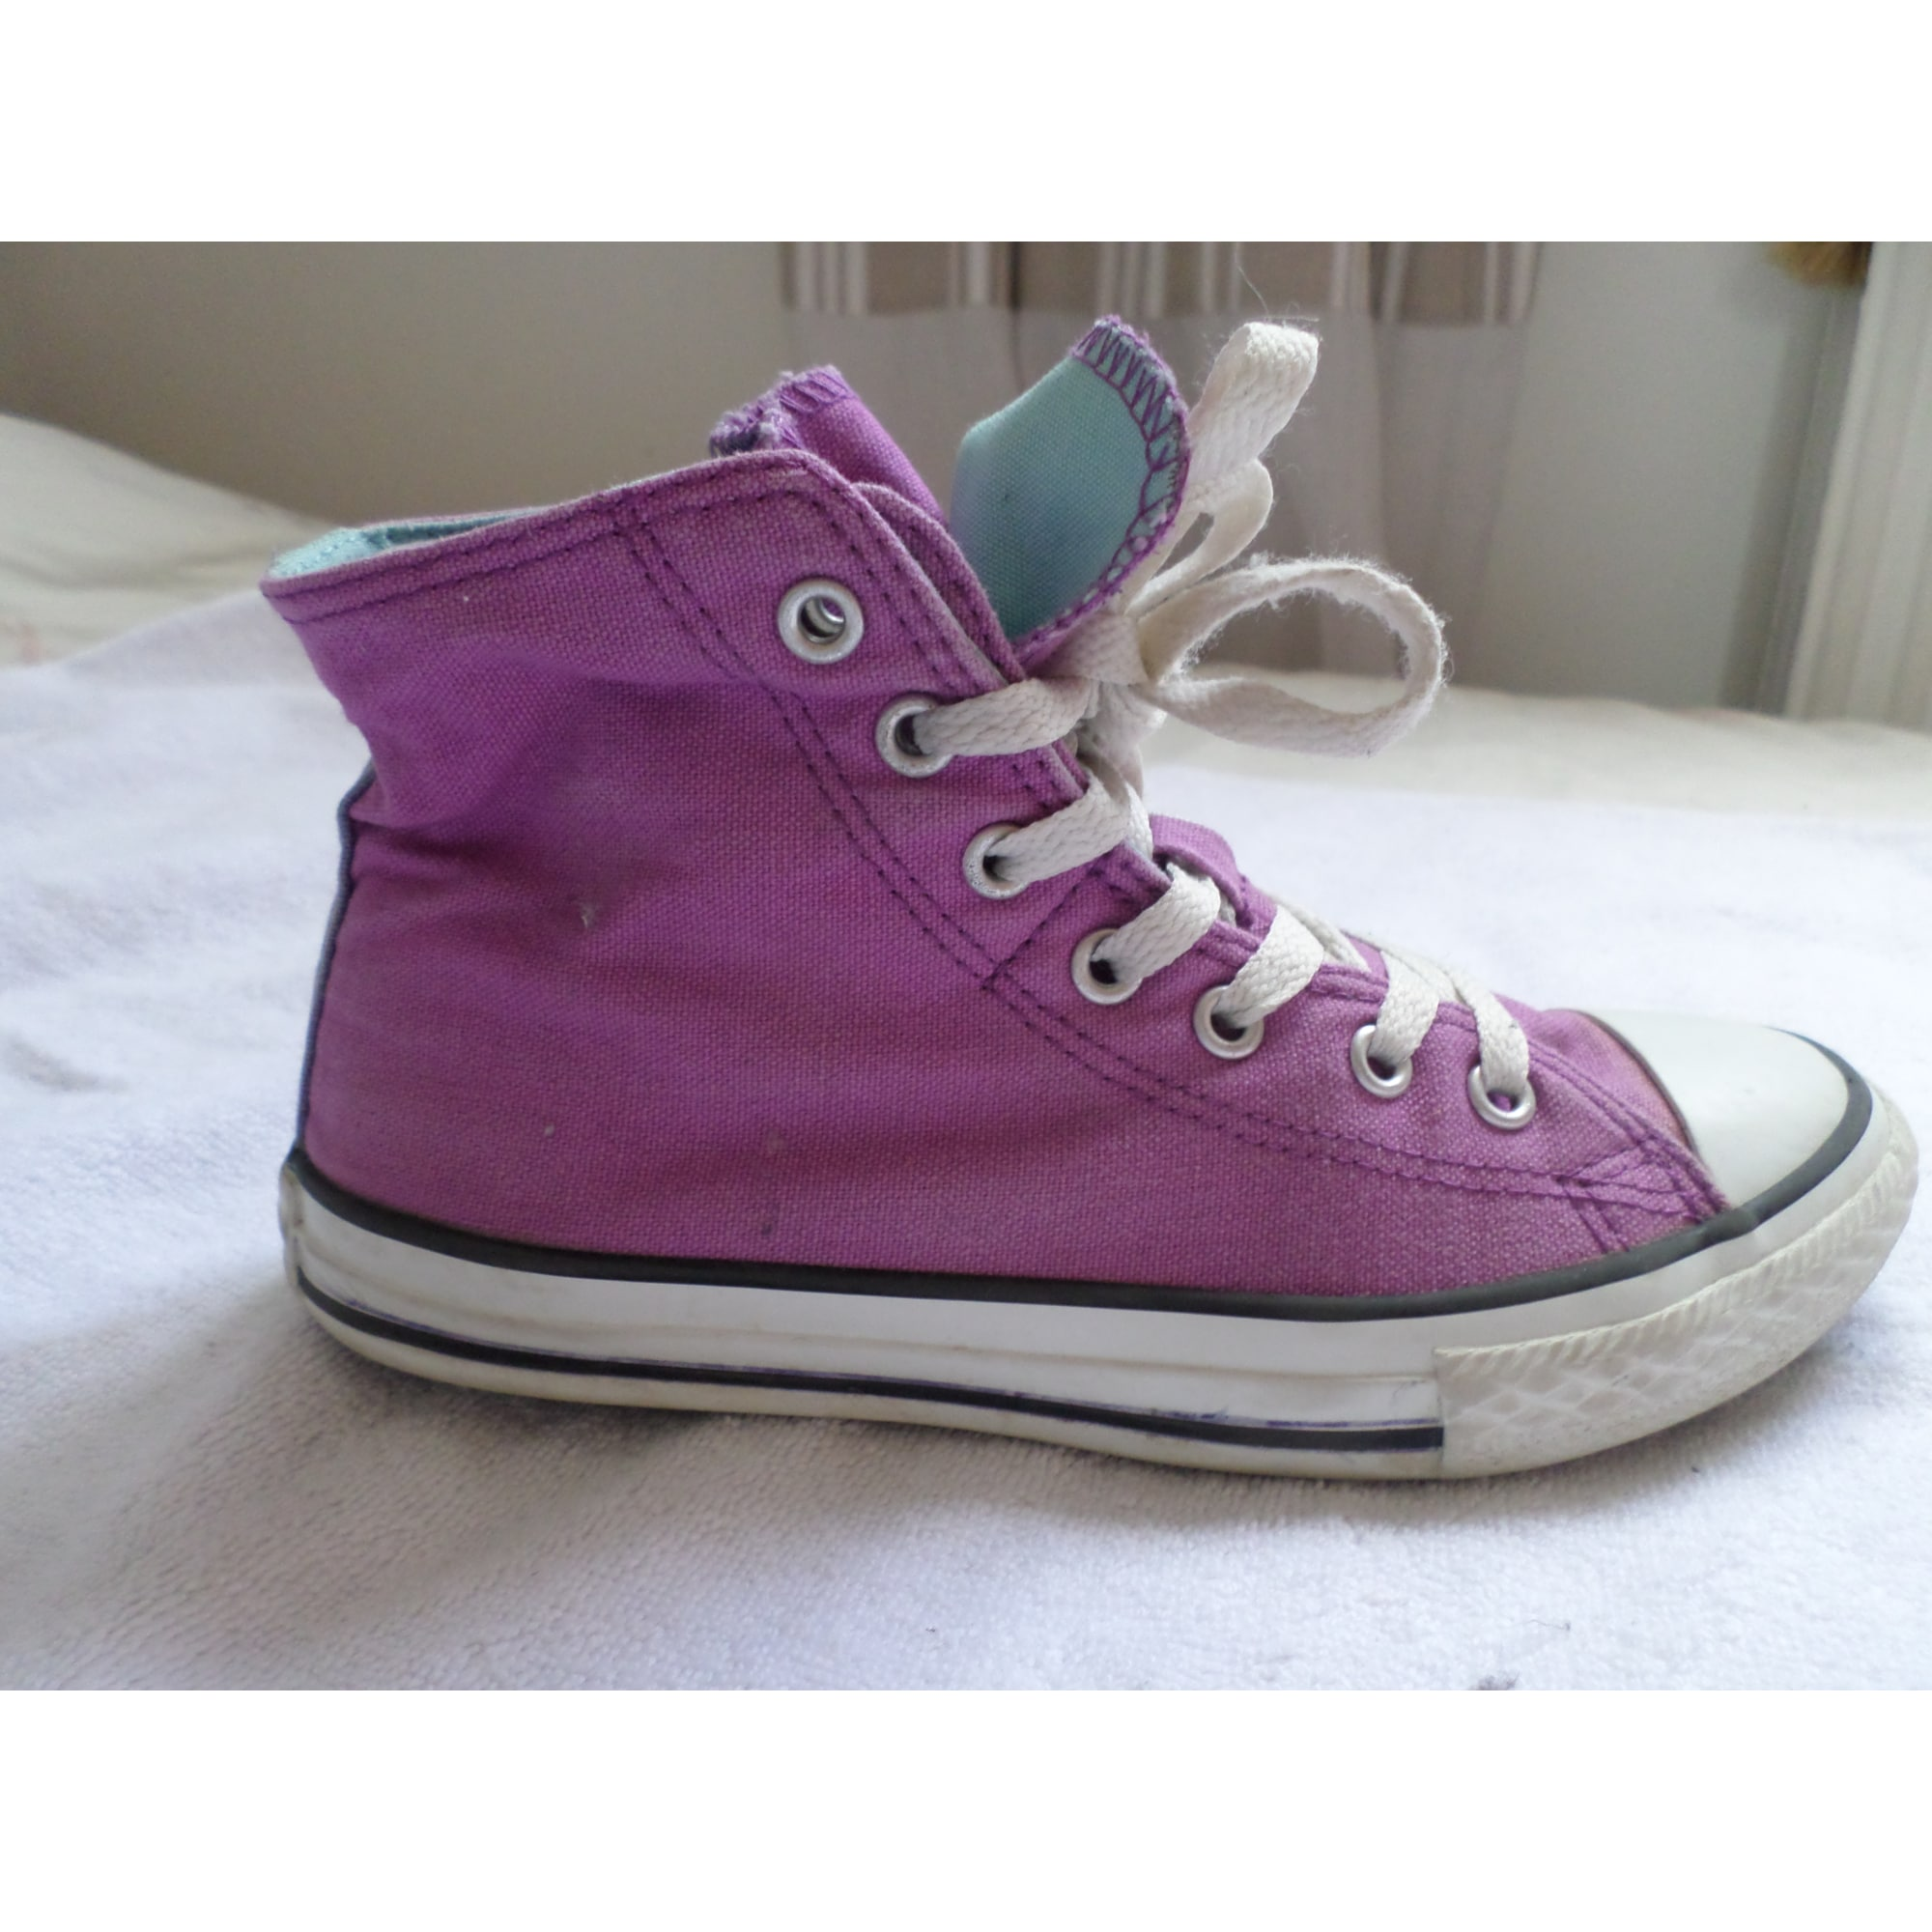 chaussures converse 34